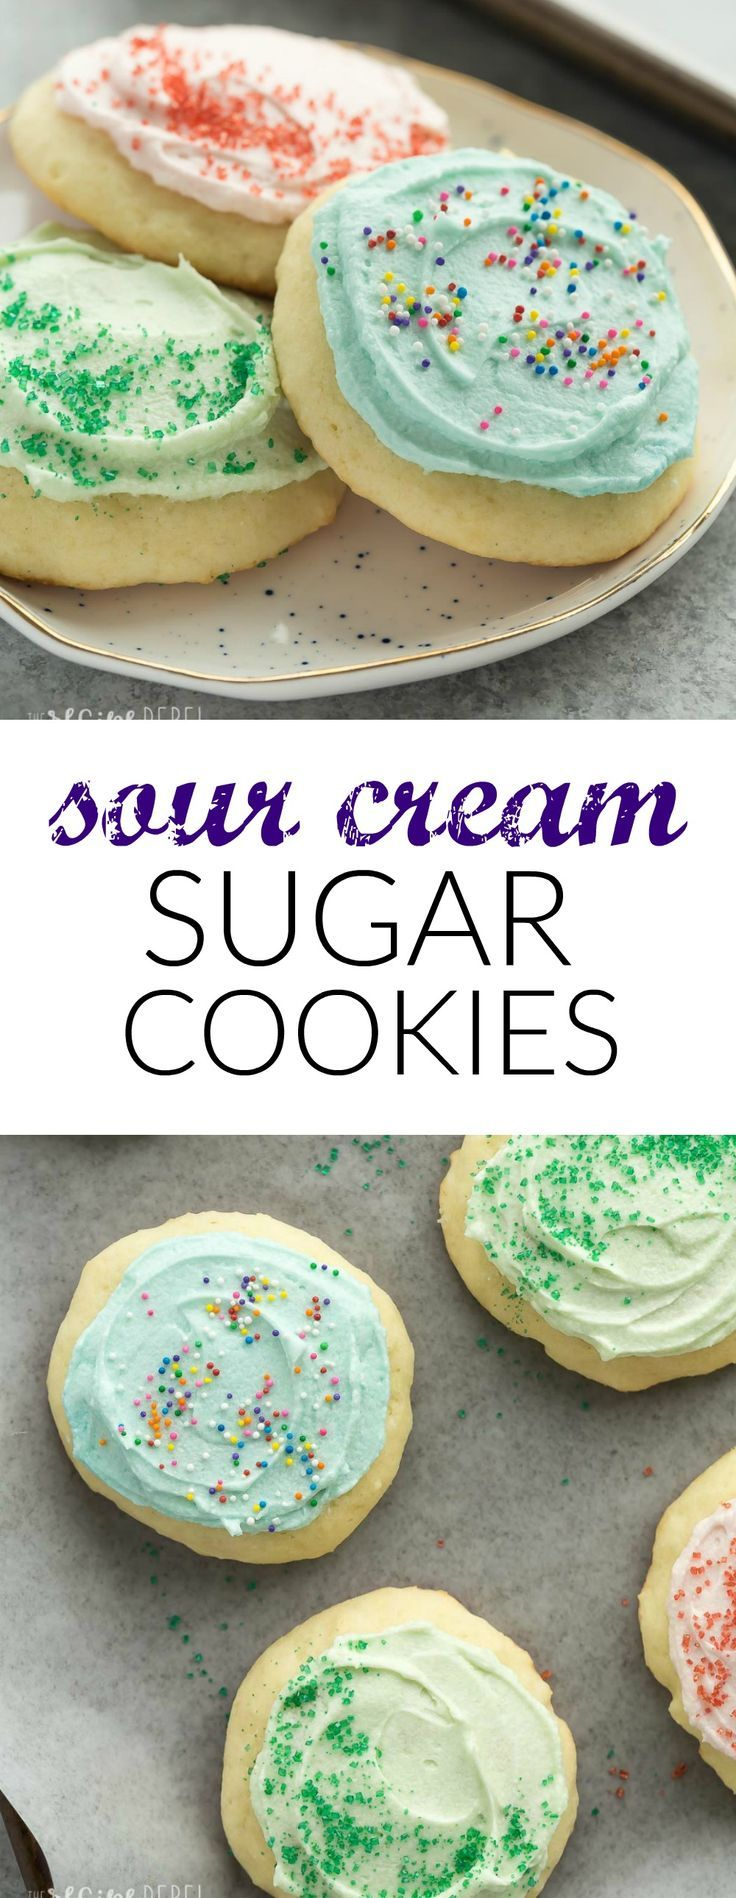 These Sour Cream Sugar Cookies are soft and fluffy with just the right amount of sweetness — they're perfect with or without frosting and make a great freezer-friendly holiday cookie!